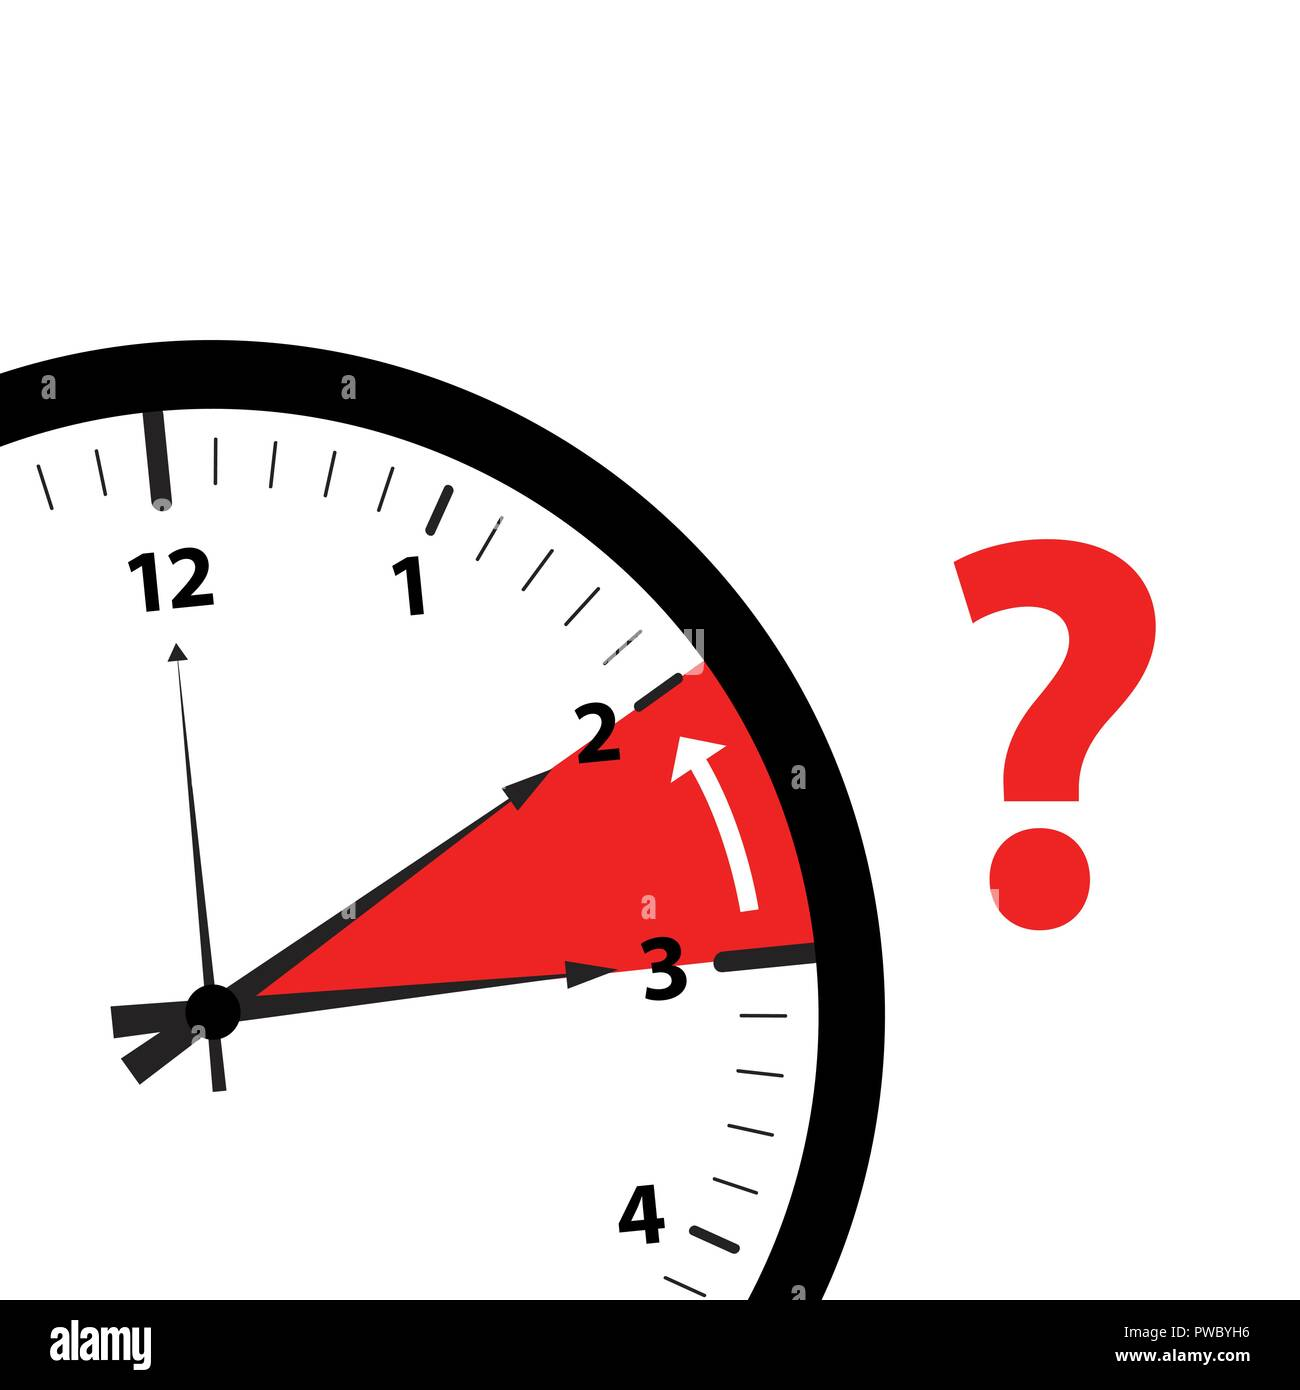 clock time zone change icon image with red question mark vector illustration - Stock Image